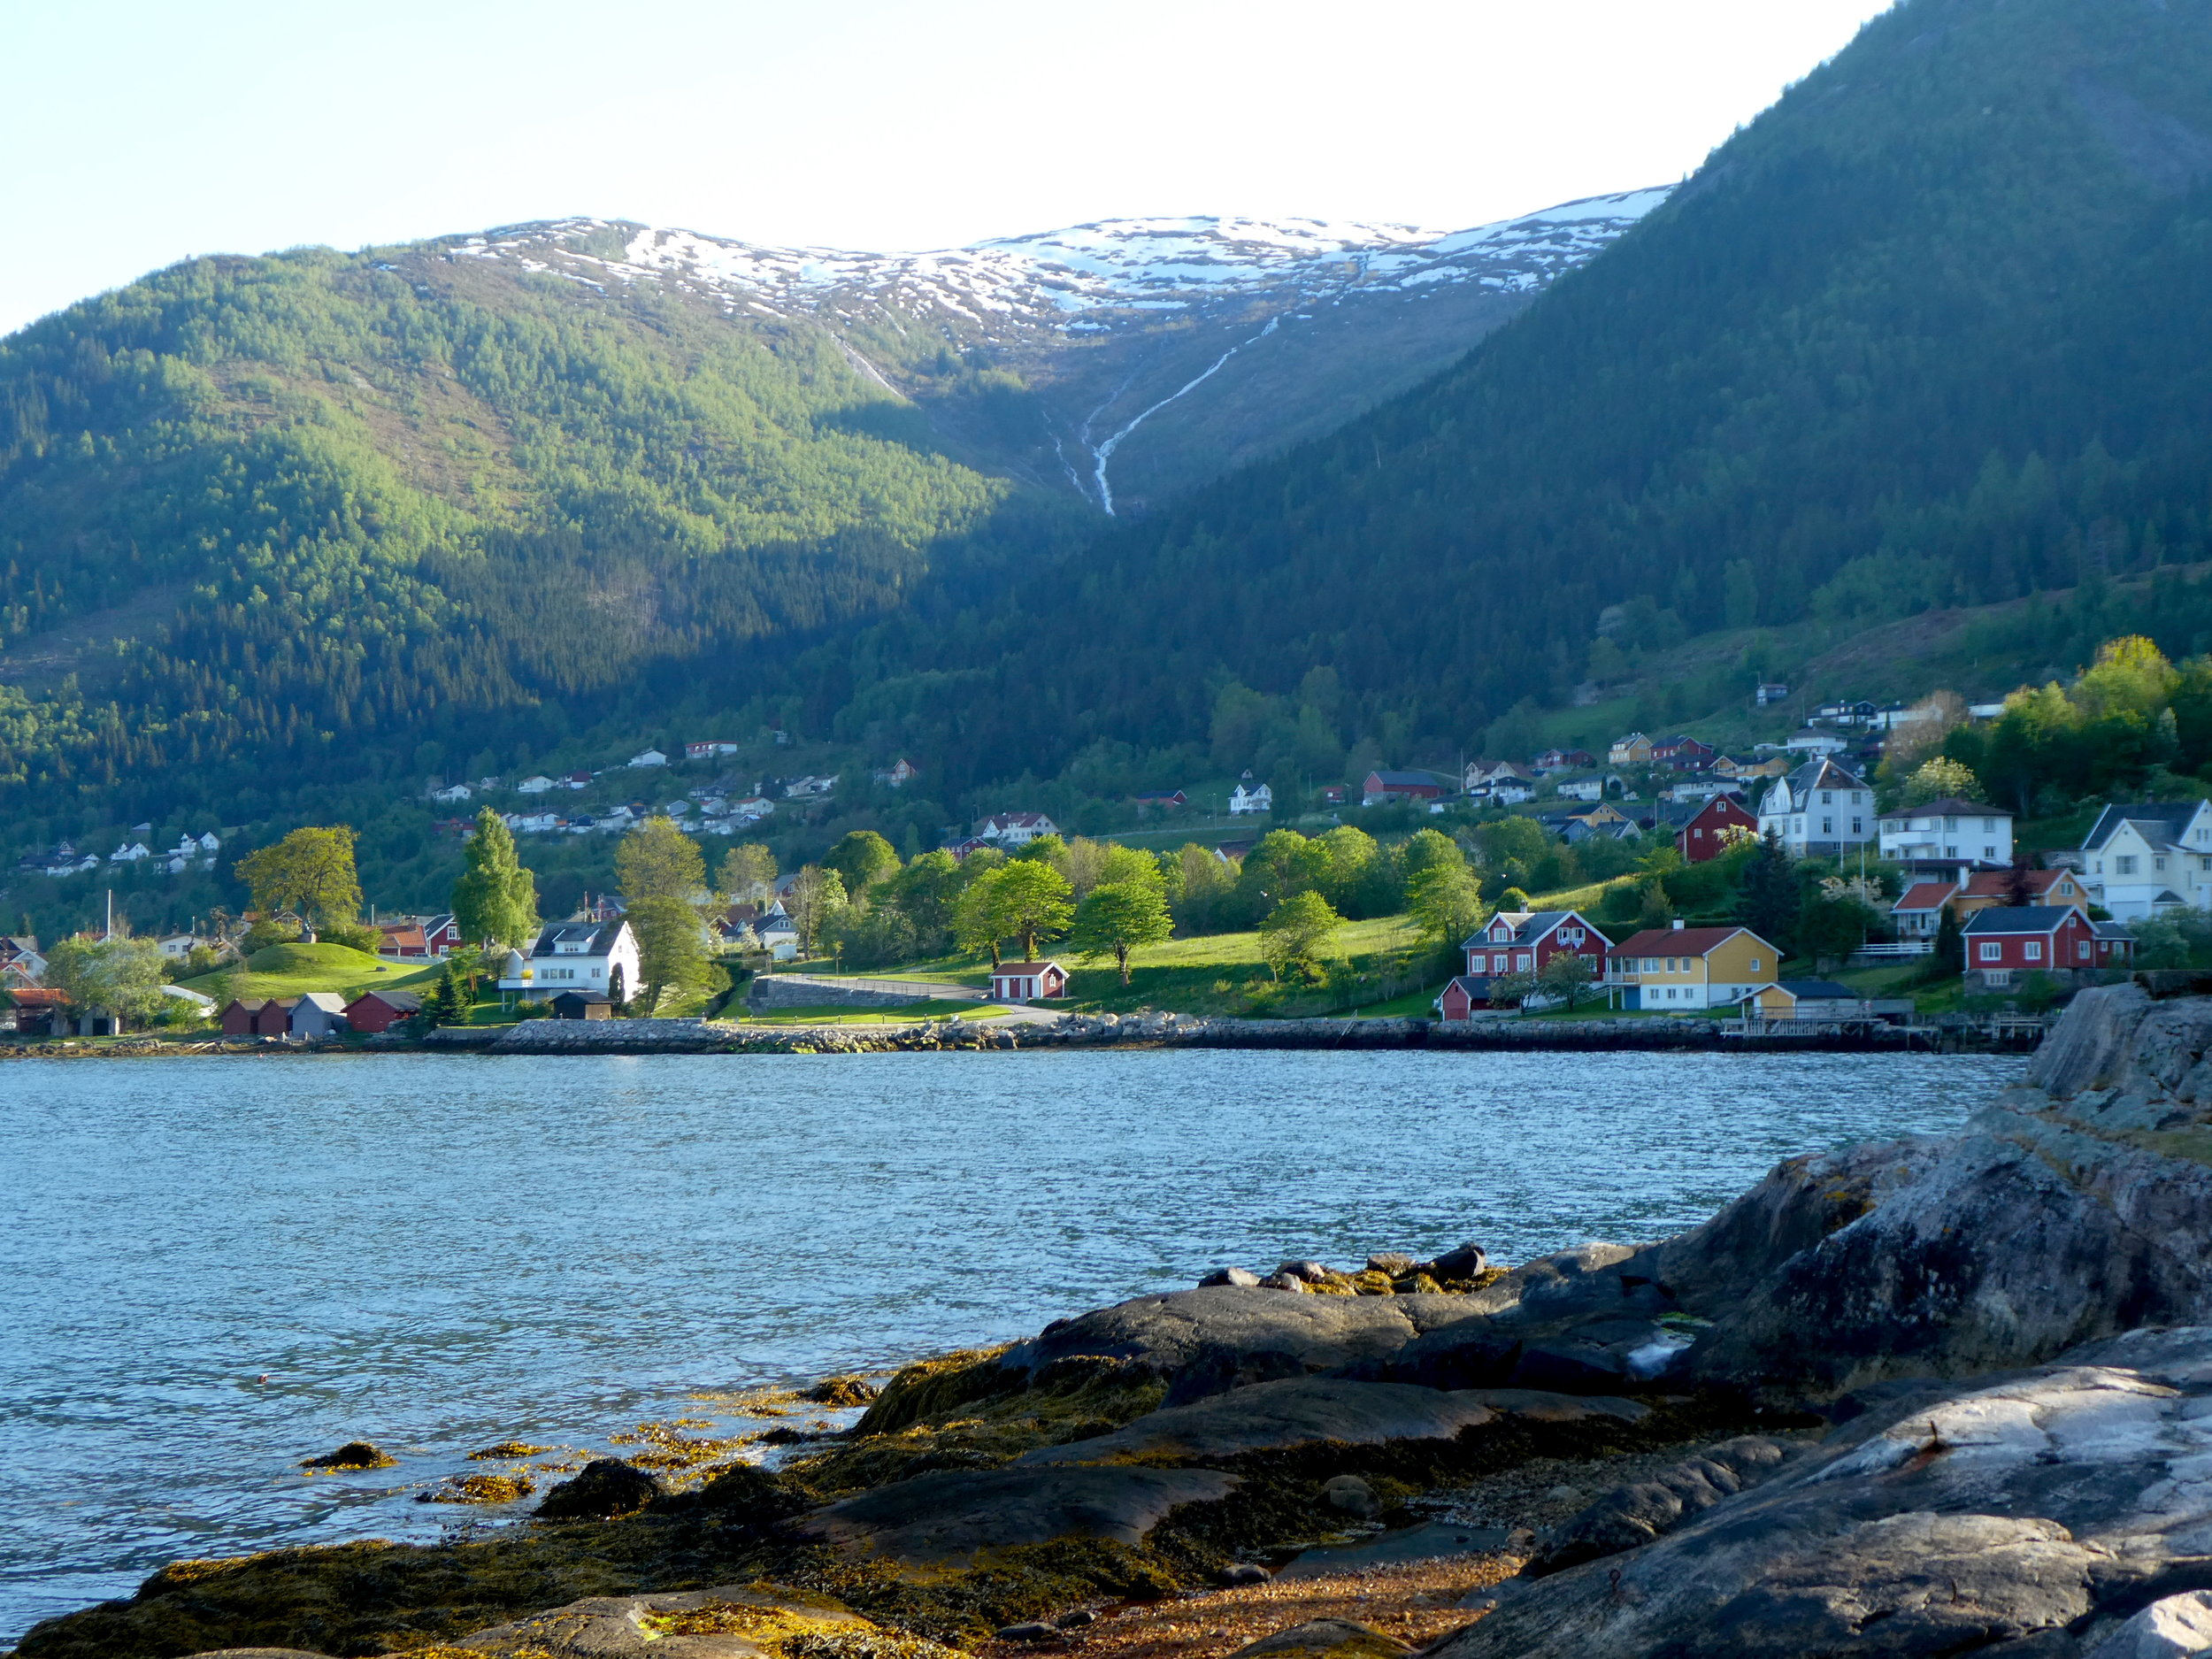 Leaving Bergen, we drive a few hours north then ferry across another fjord for an overnight in the charming village of Balestrand.